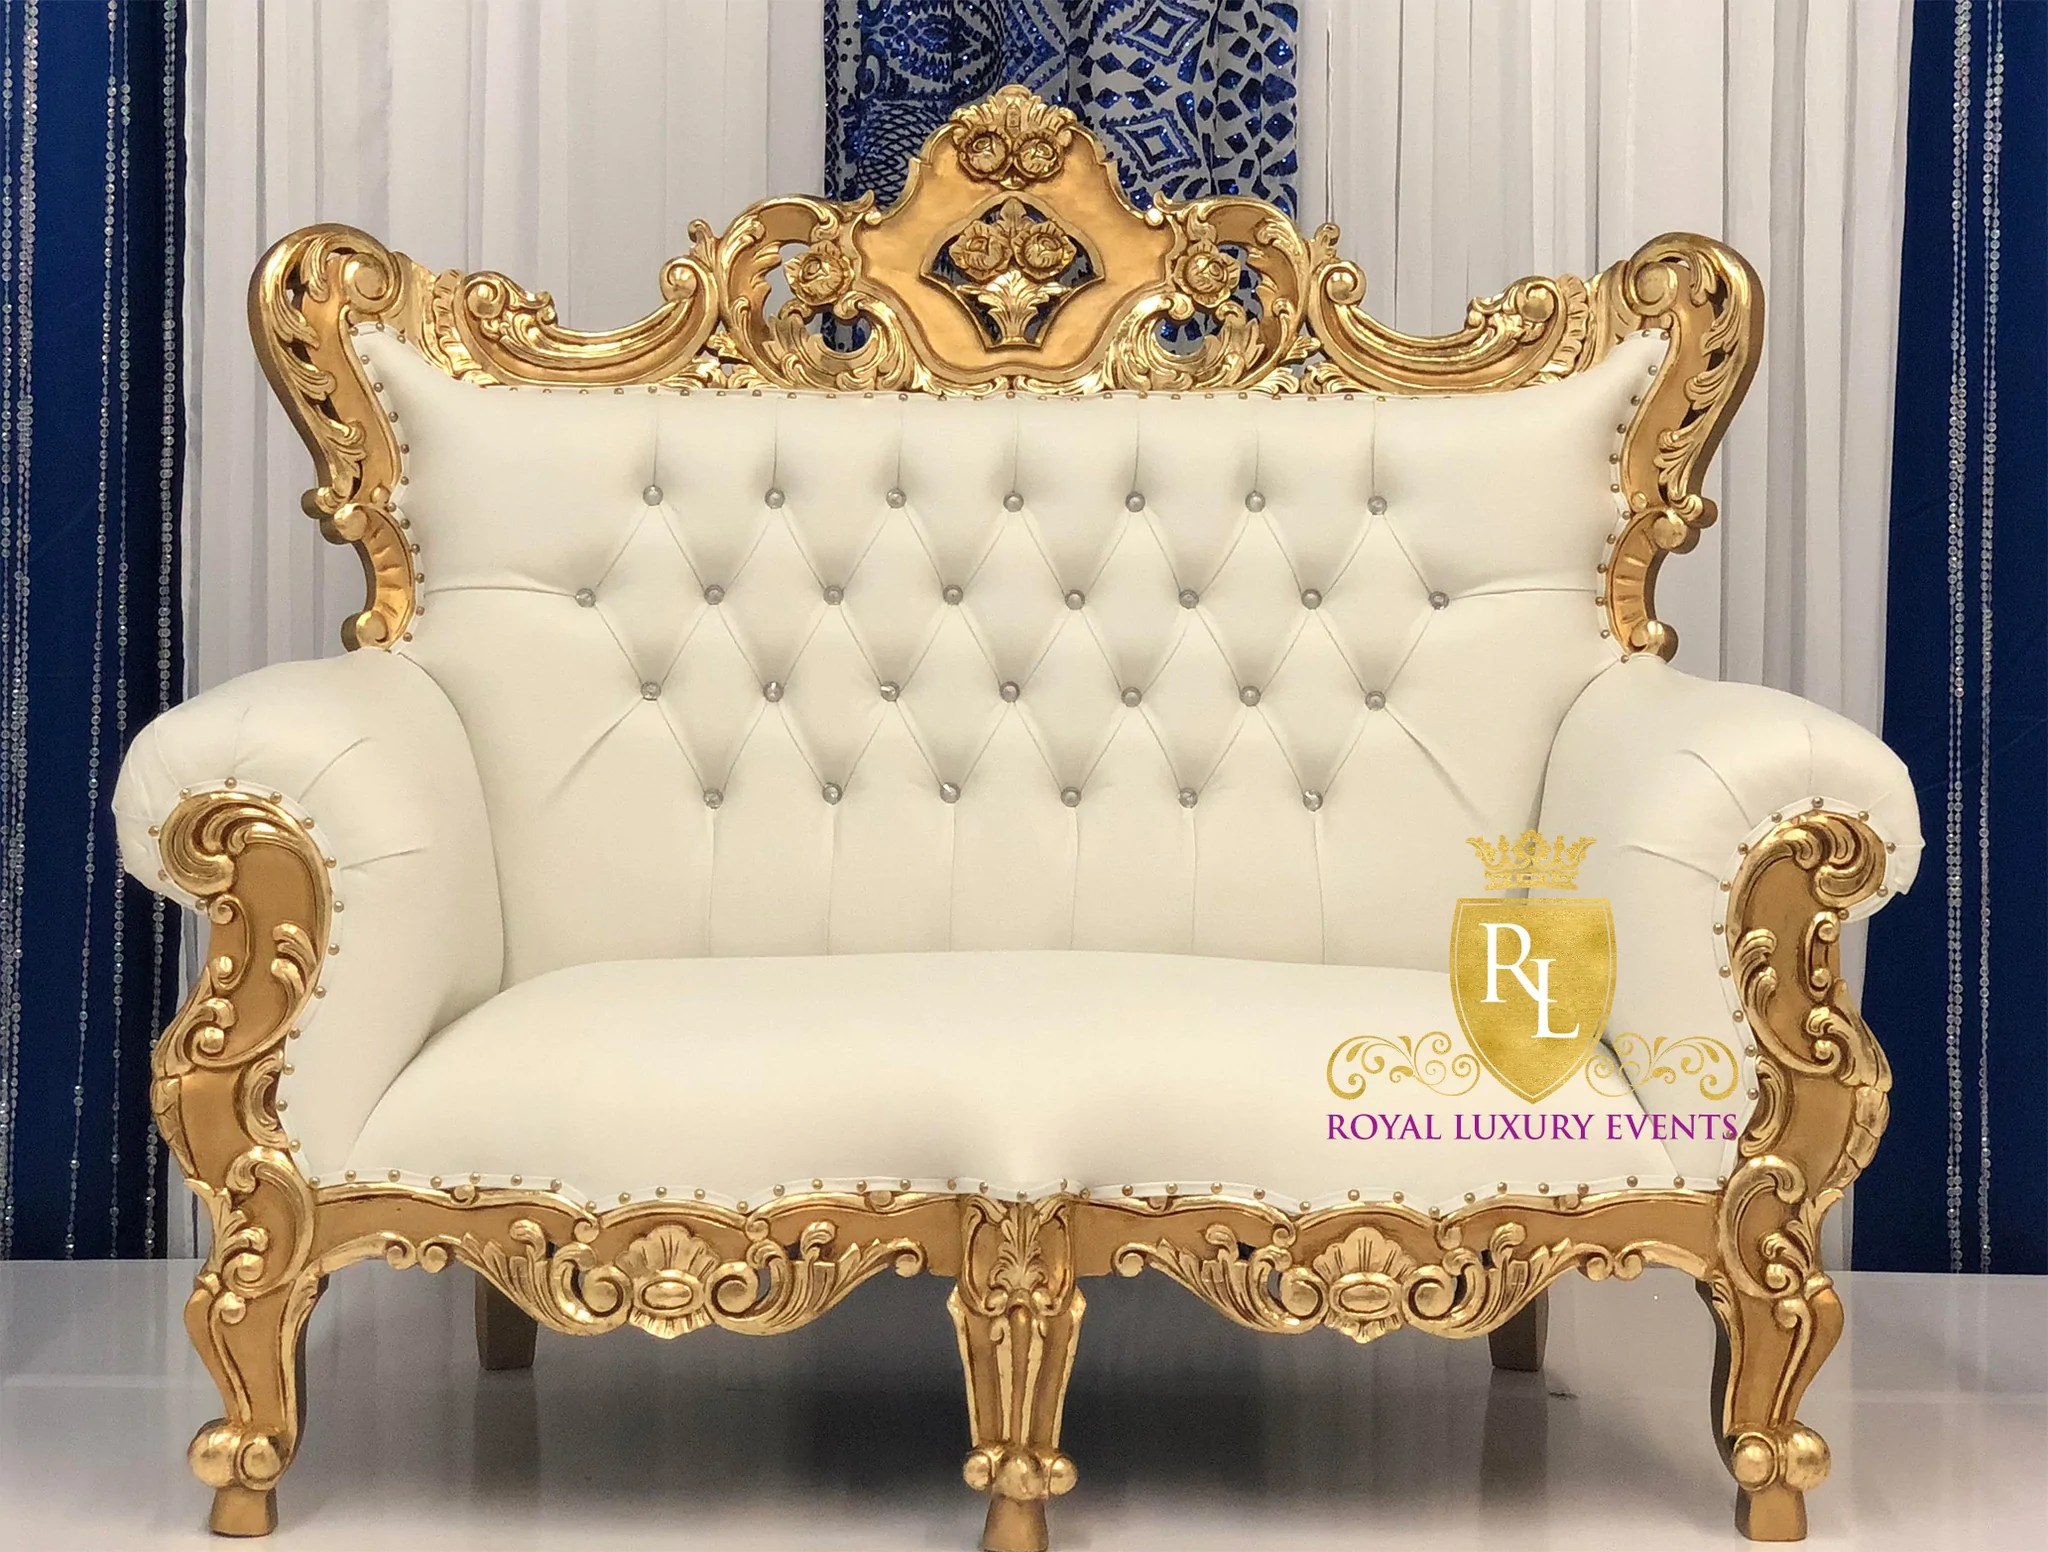 Royal Chair Rental Tables And Chairs Royal Luxury Events And Rentals